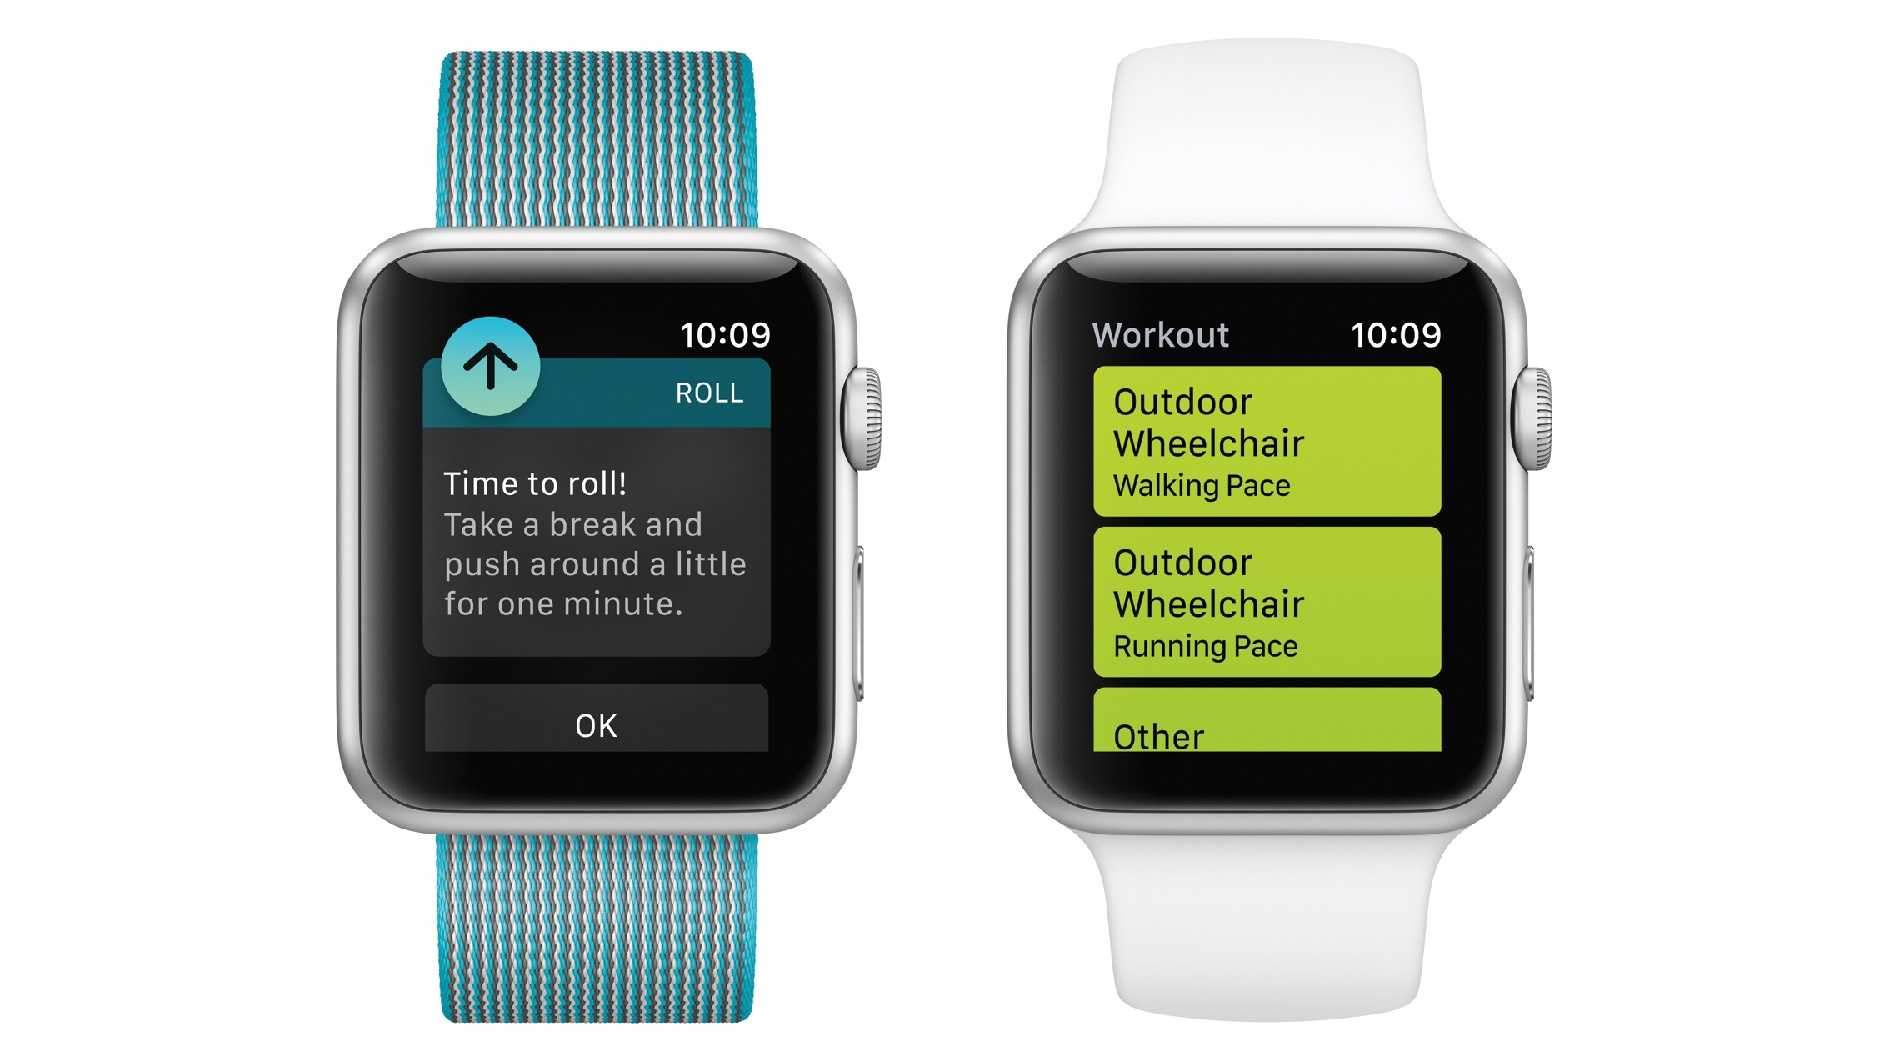 This undated photo provided by Apple shows a demonstration of fitness tracking available to wheelchair users with an upcoming Apple Watch update. Adaptations include prompts to push the wheelchair around instead of standing breaks and the tracking of wheelchair workouts alongside running and cycling.